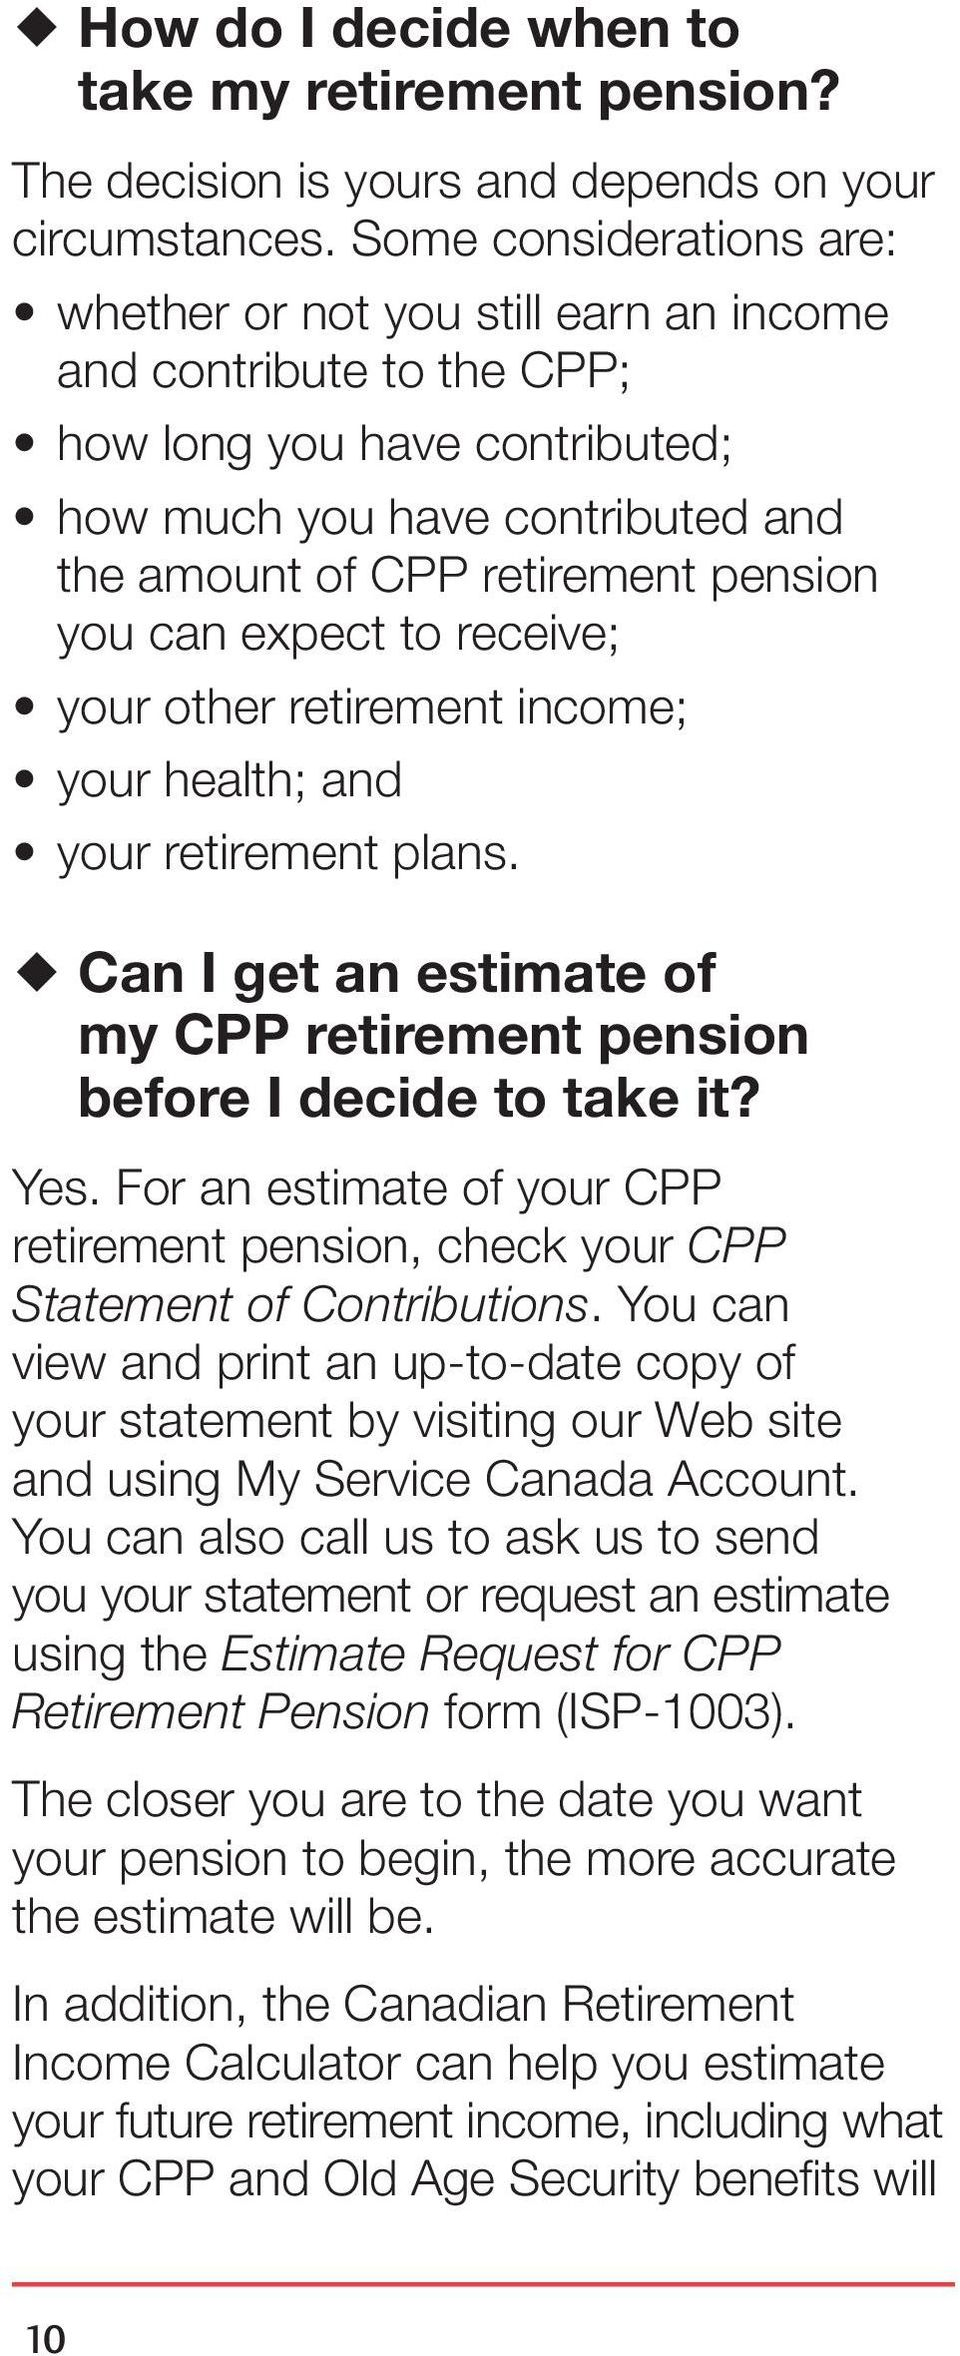 can expect to receive; your other retirement income; your health; and your retirement plans. Can I get an estimate of my CPP retirement pension before I decide to take it? Yes.